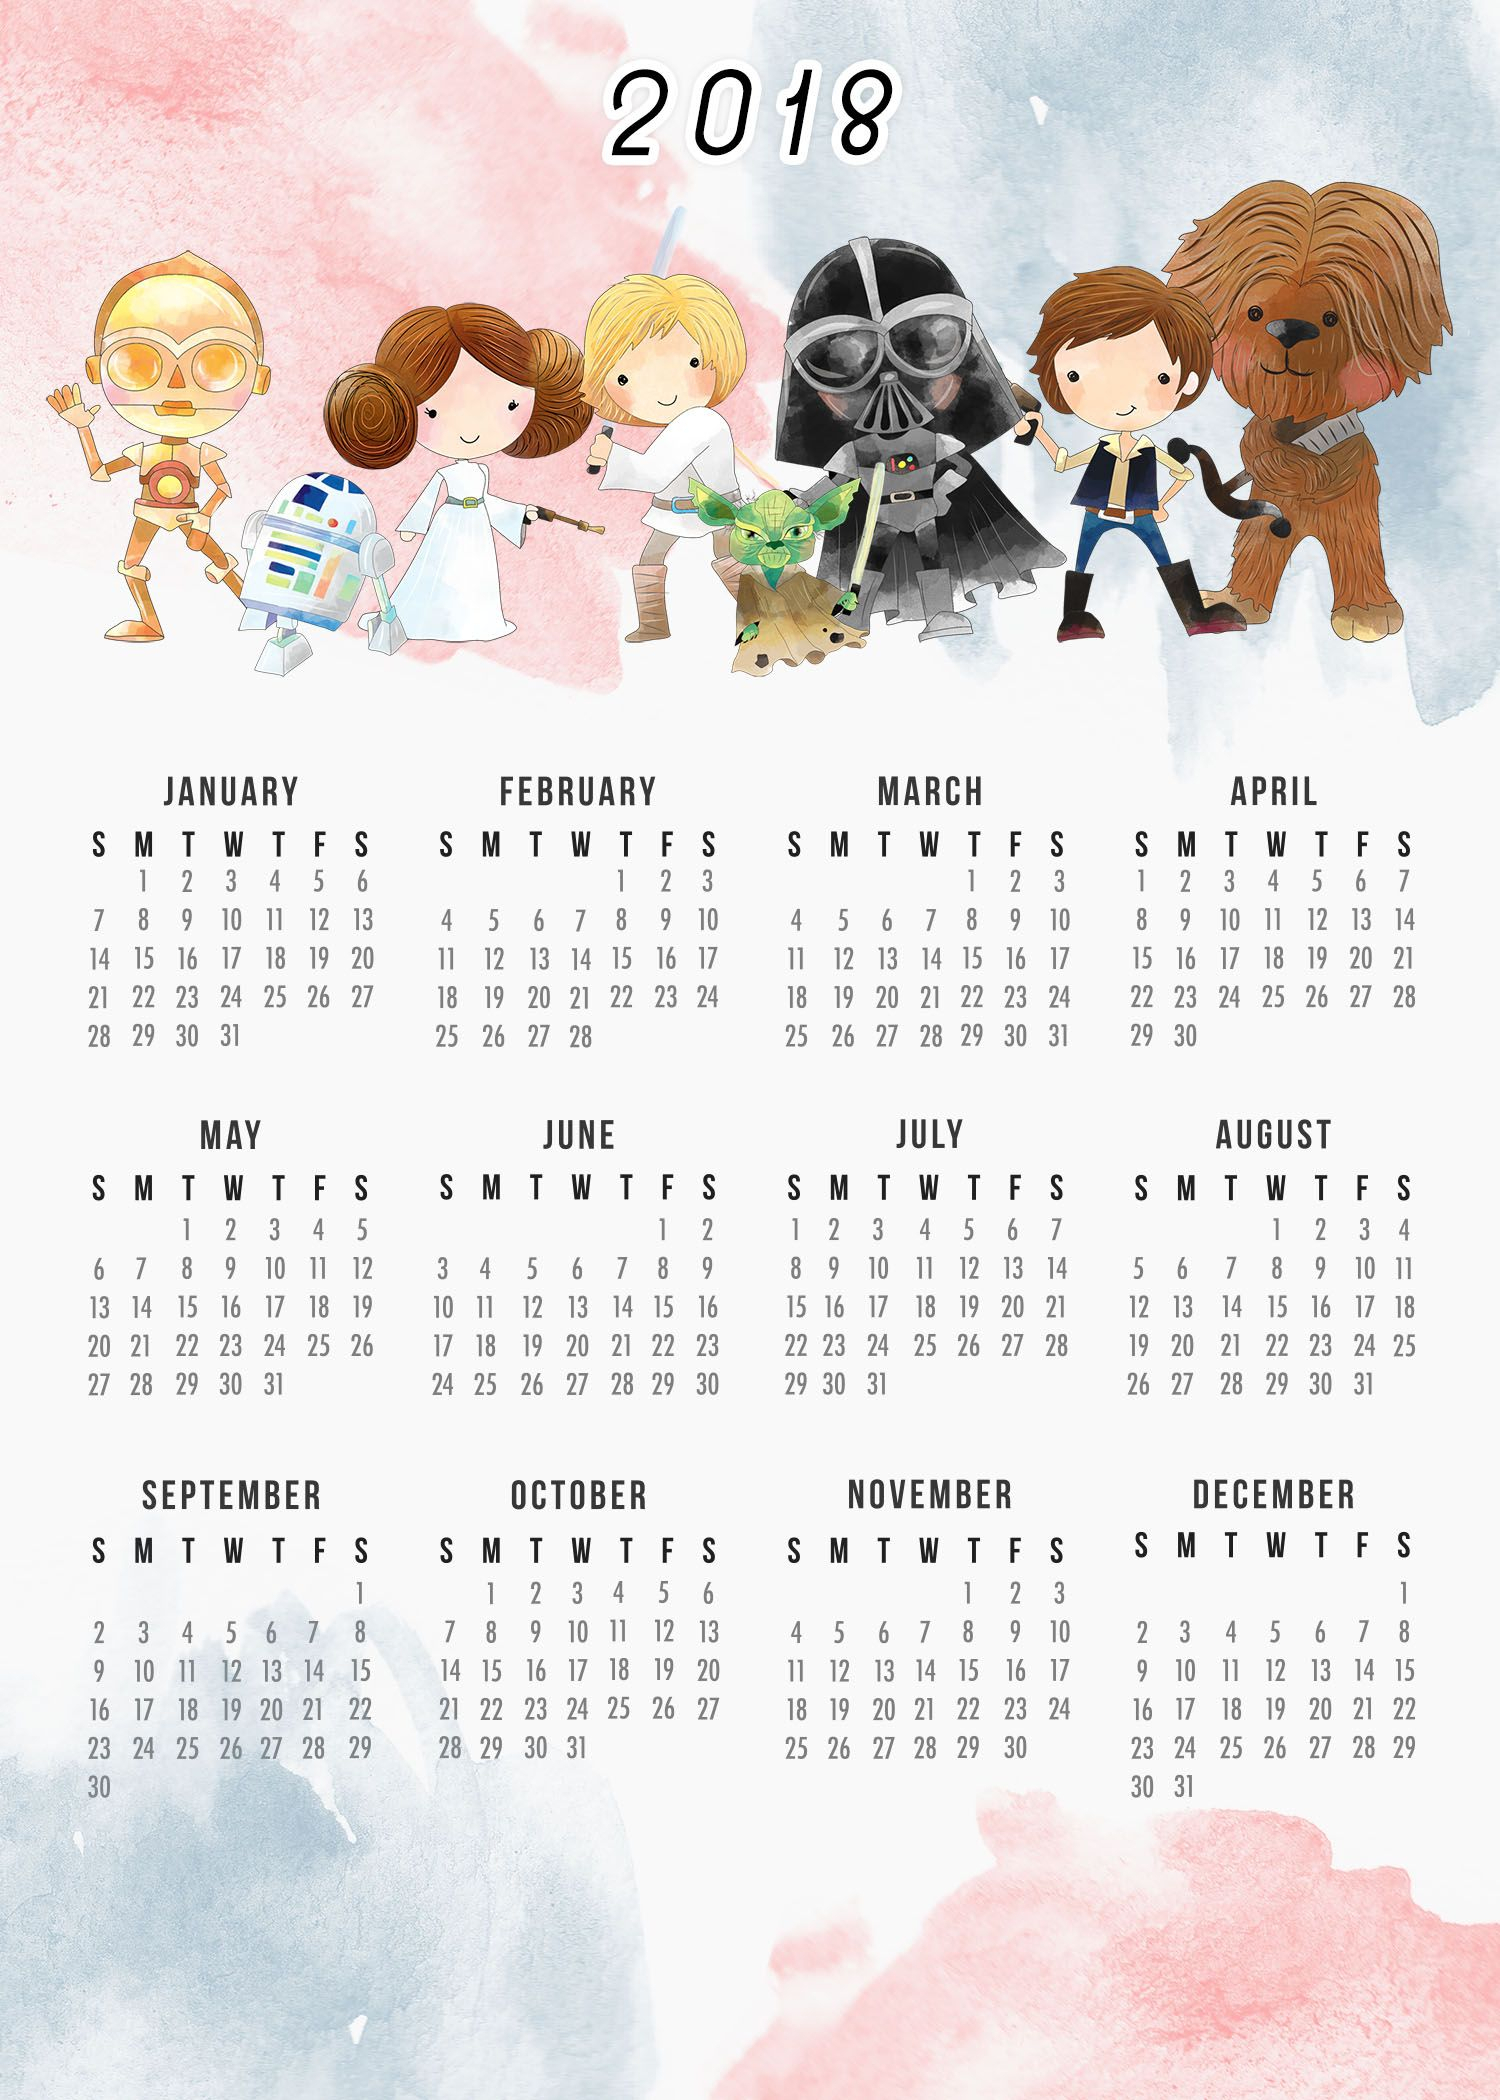 Free Printable 2018 Star Wars Calendar  One Page pertaining to Star Wars Calendar Printable